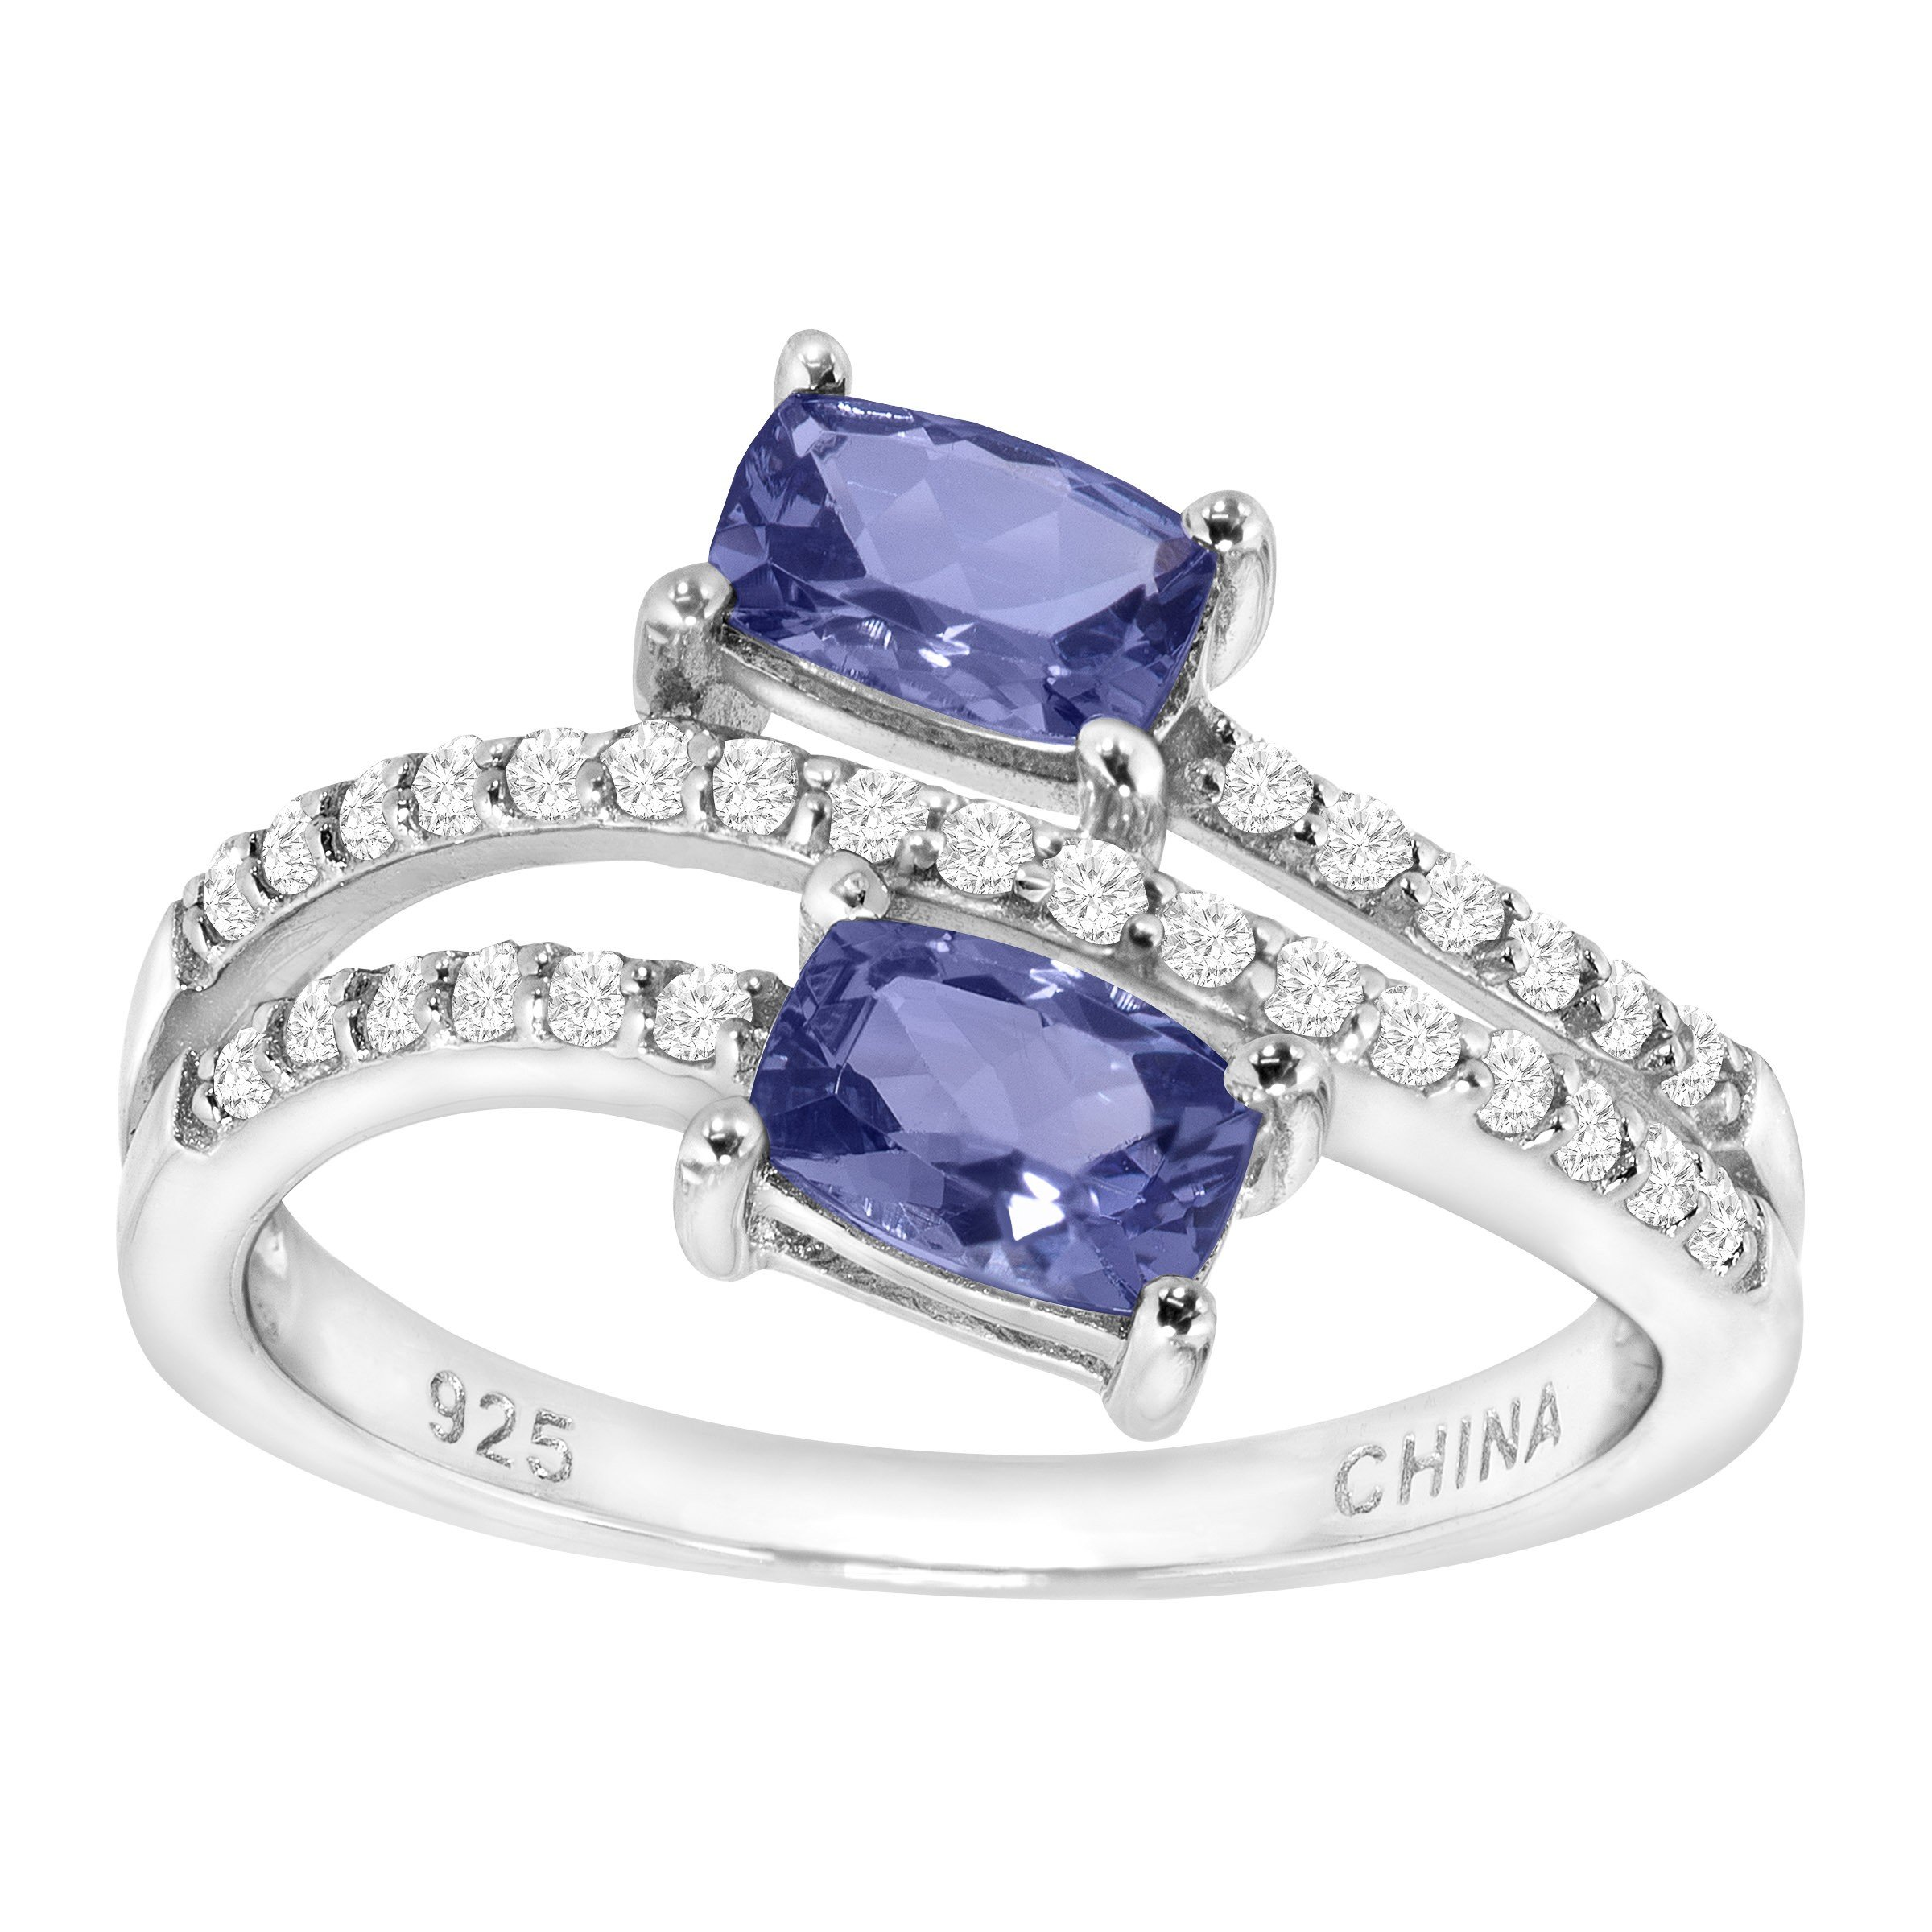 1 1/3 ct Natural Tanzanite & Cubic Zirconia Bypass Ring in Sterling Silver Size 6